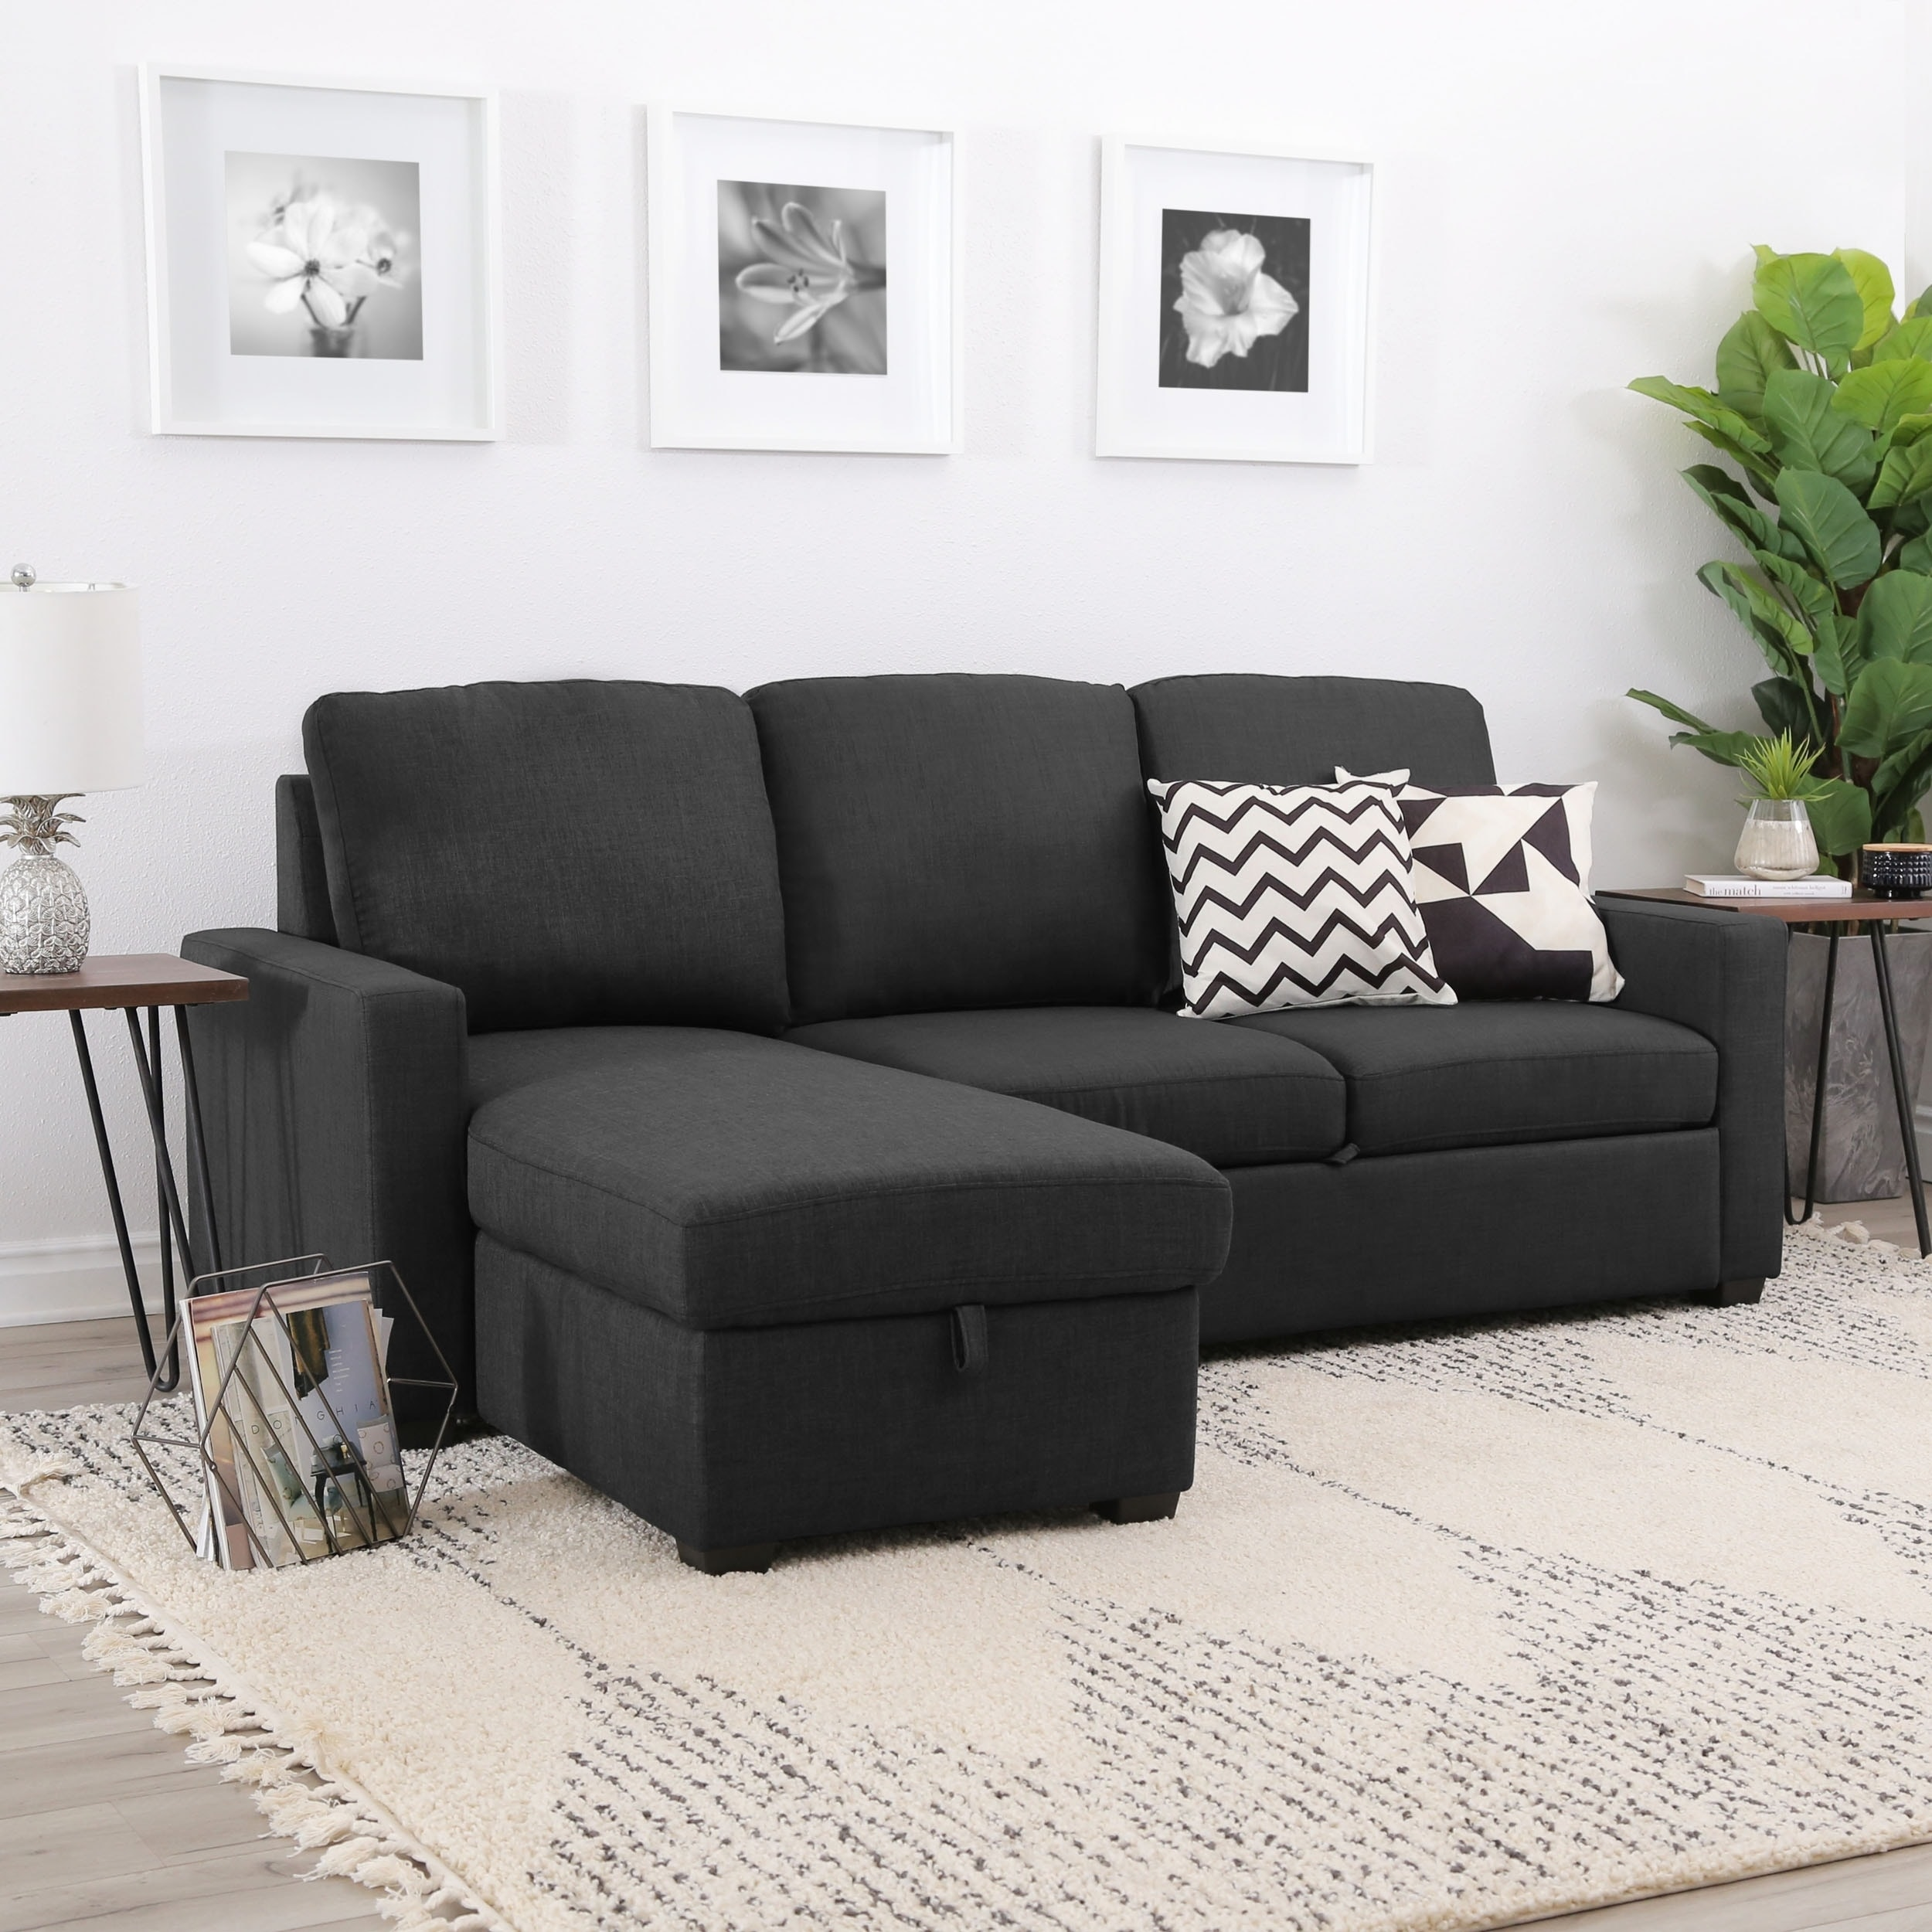 Living Divani Sofa Price Buy Sleeper Sectional Sofas Online At Overstock Our Best Living